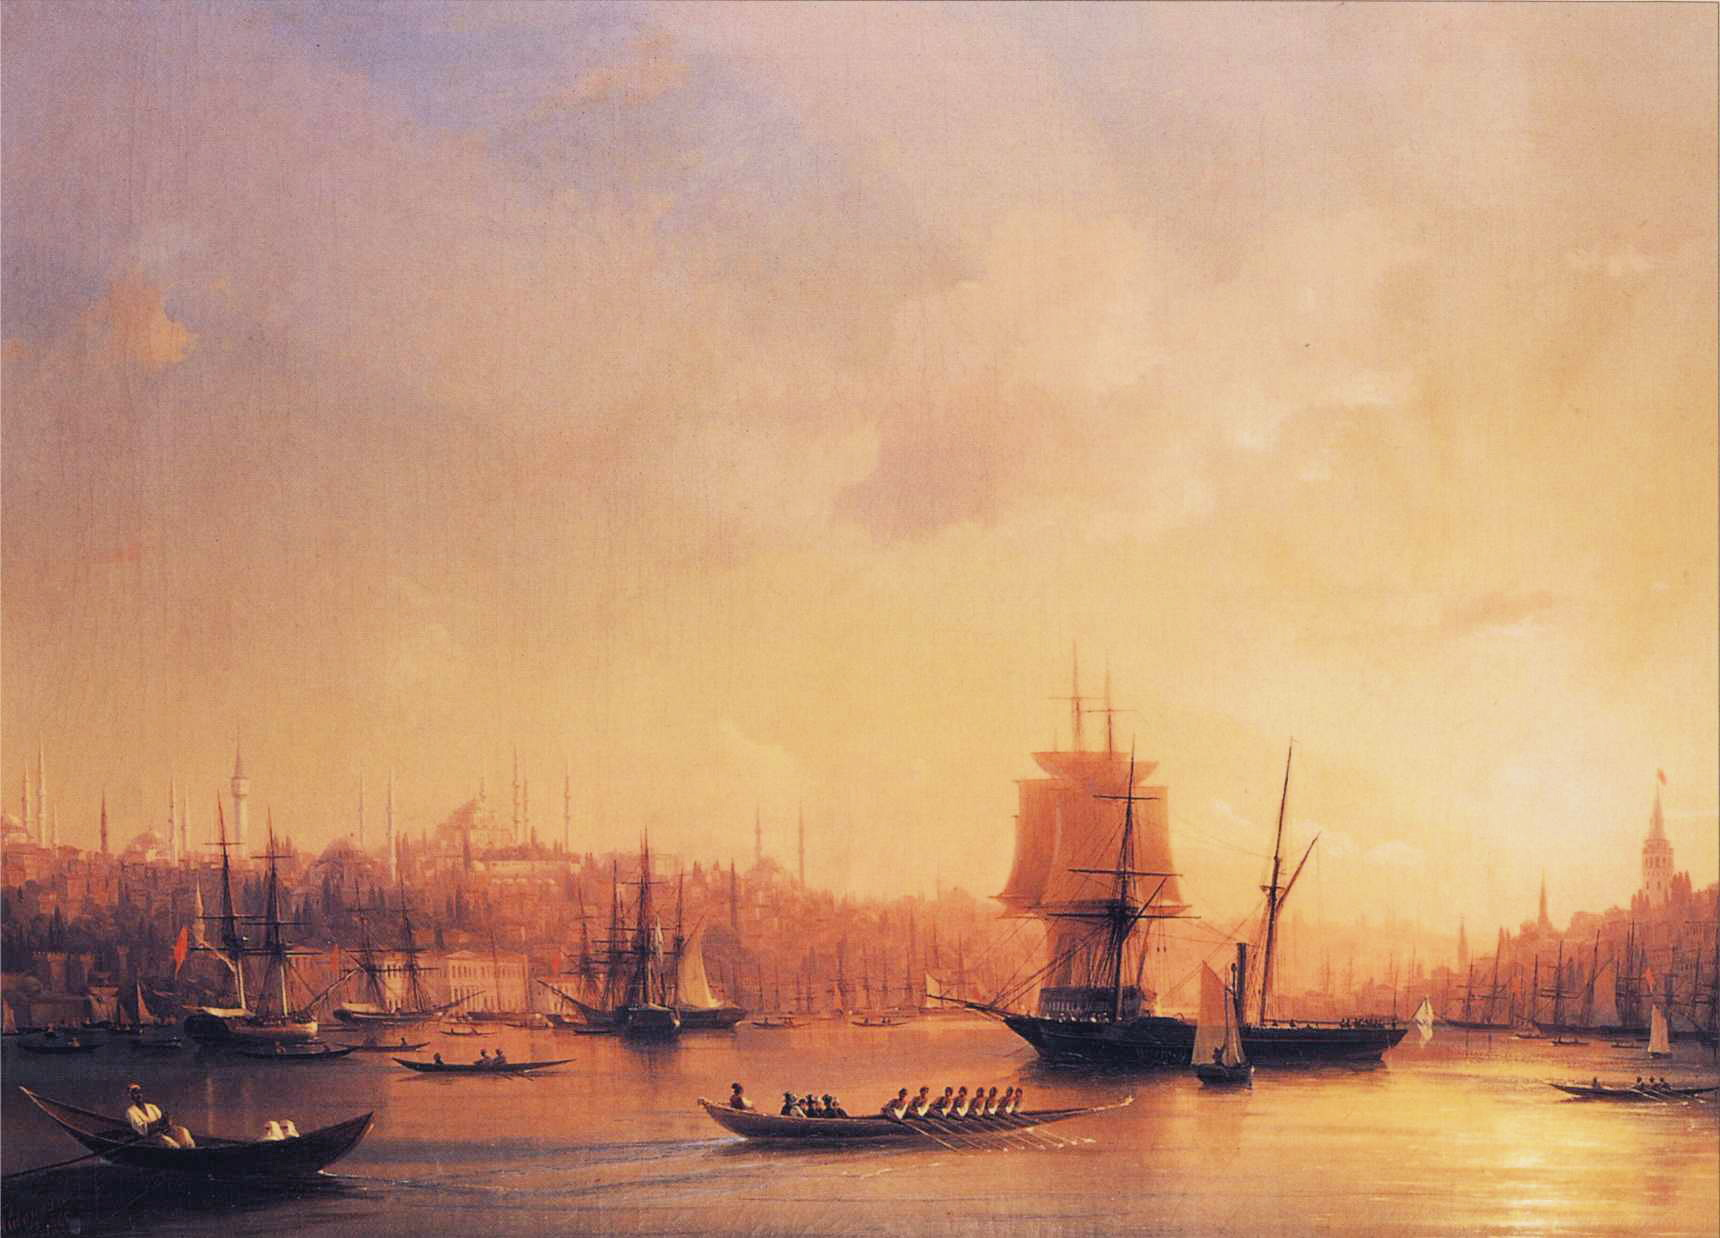 Ivan_Constantinovich_Aivazovsky_-_Dusk_on_the_Golden_Horn.jpg